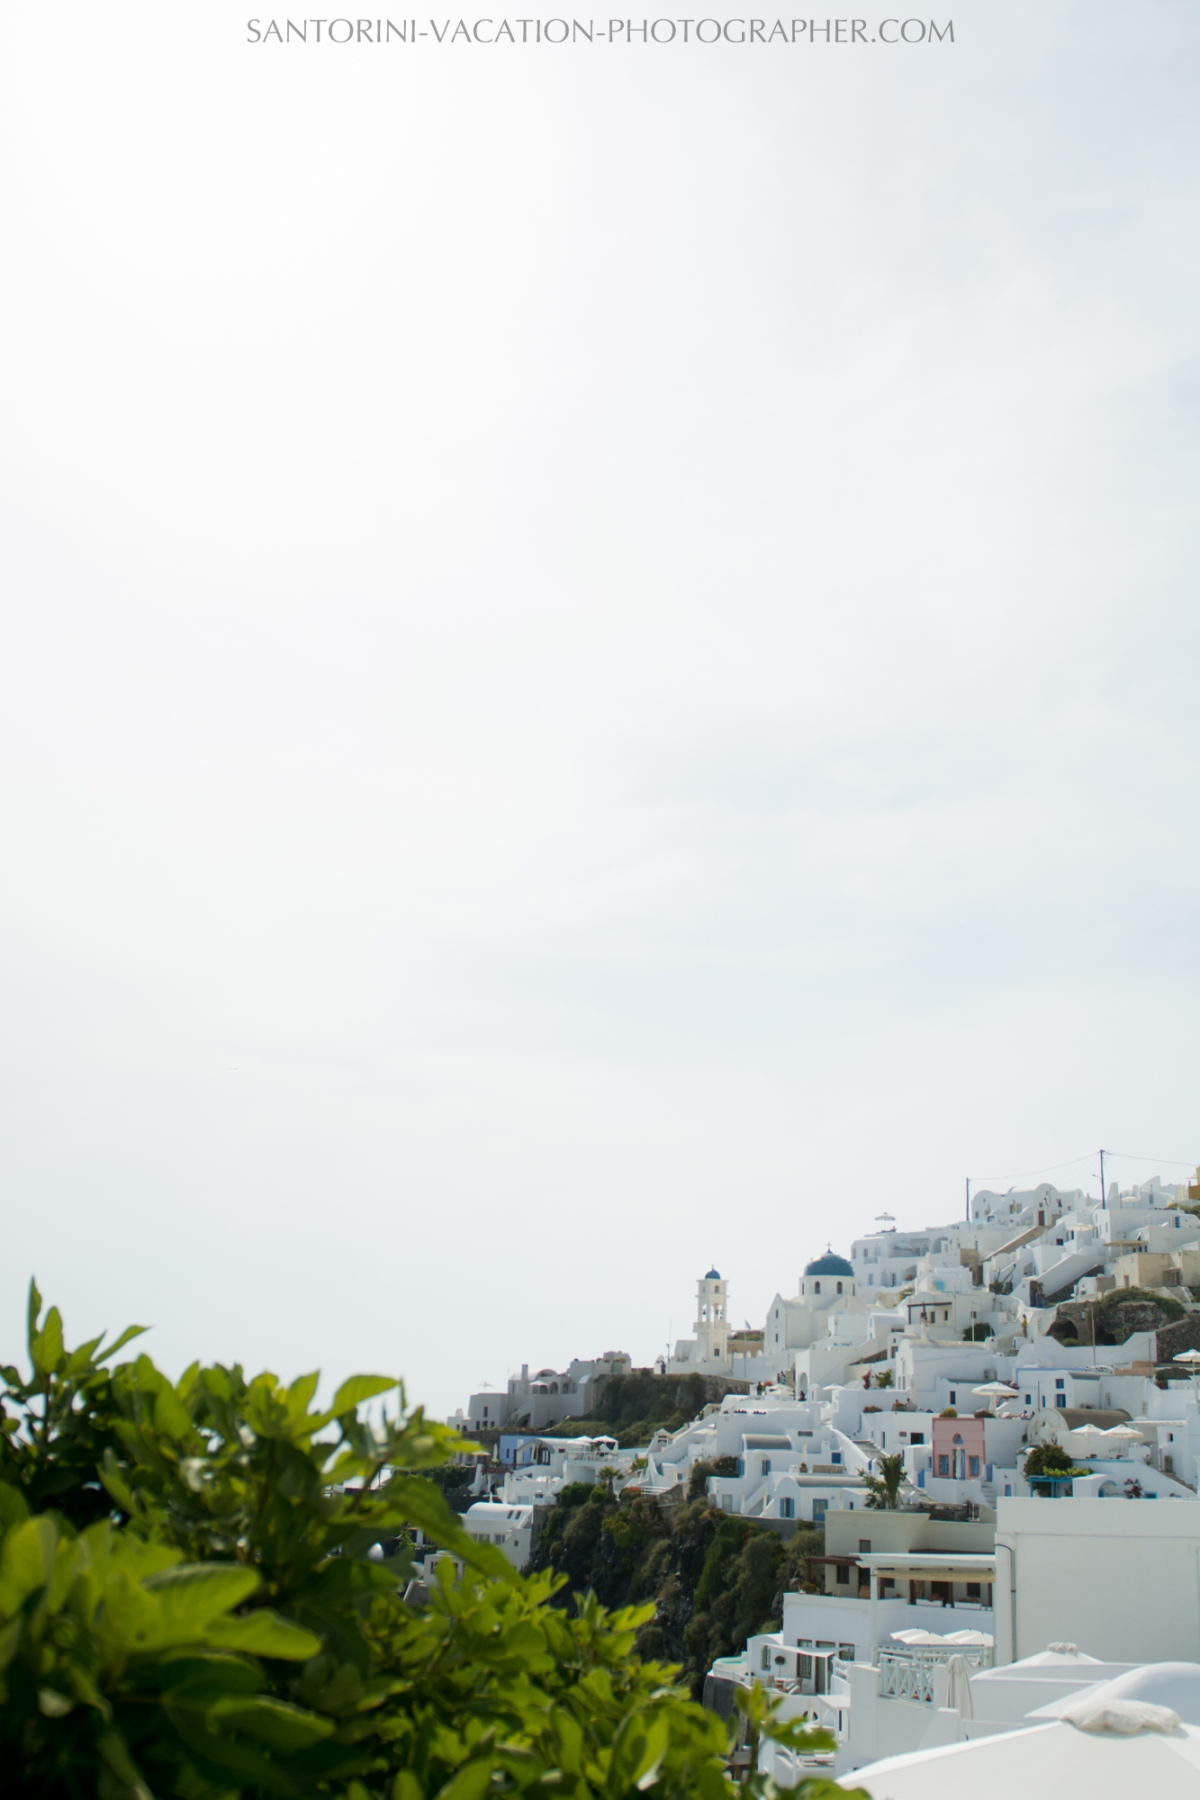 Sunset-photo-session-santorini-fine-art-photographer-location-{Sequence # (001)»}-6